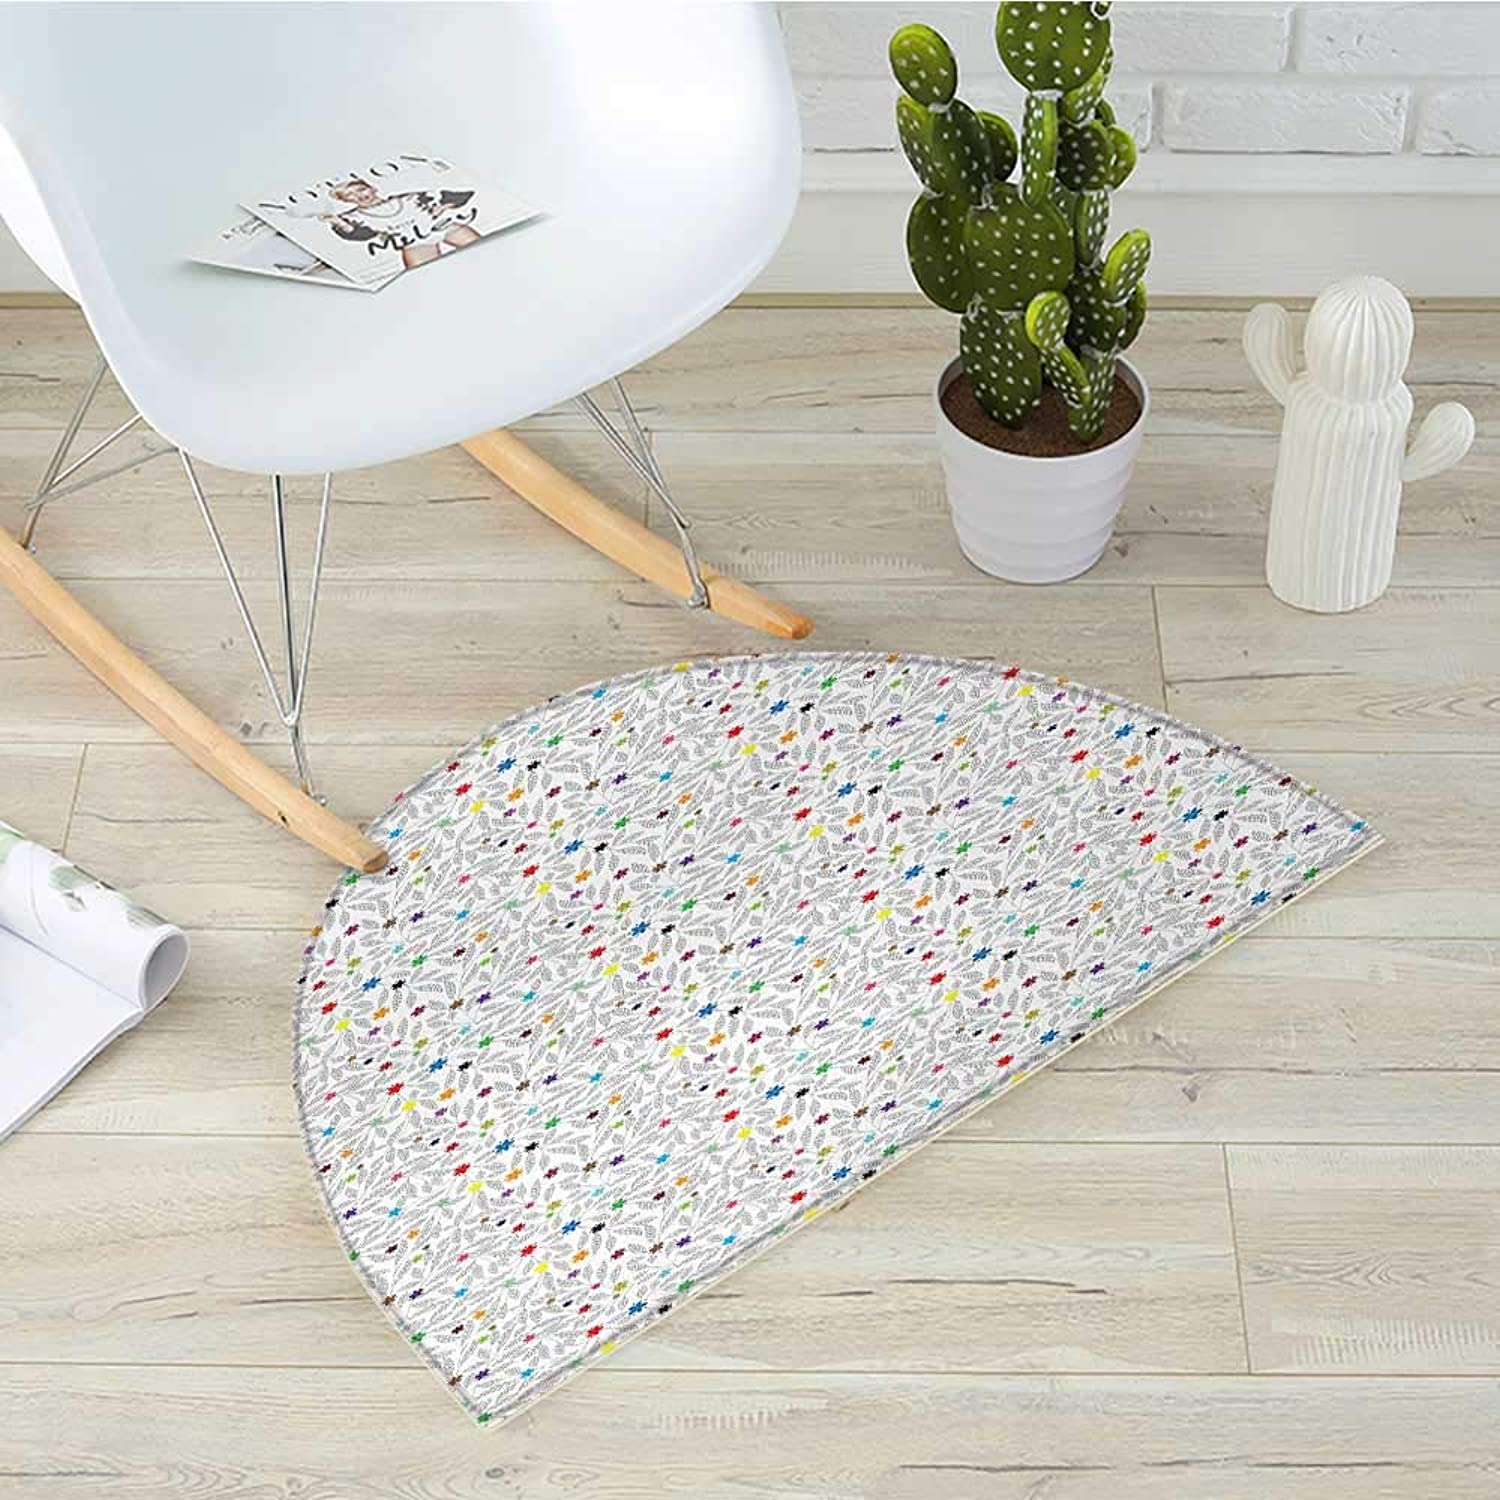 Floral Semicircle Doormat Black and White Leaves with Lively colord Little Blossoms Artful Hand Drawn Style Halfmoon doormats H 43.3  xD 64.9  Multicolor